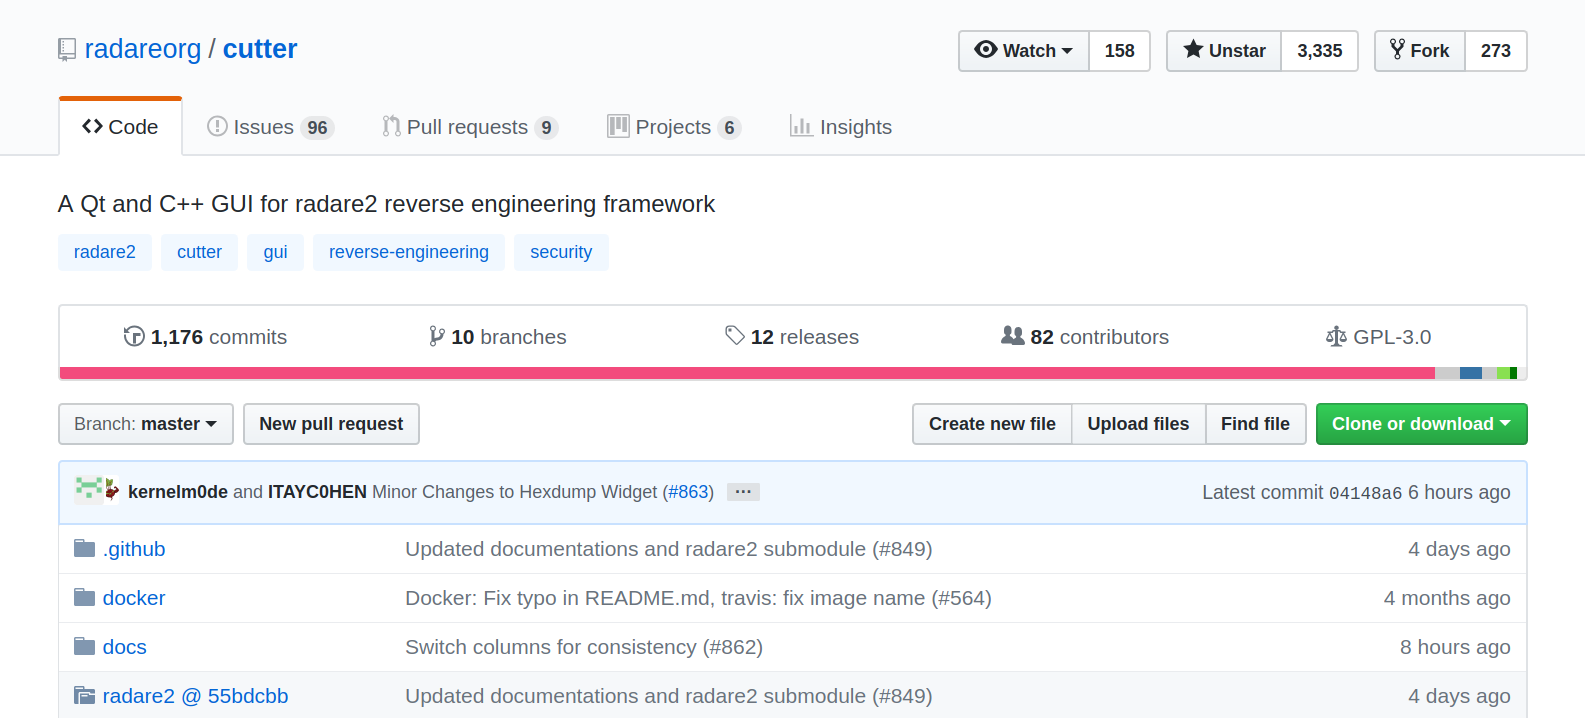 A screenshot of the radare2 Cutter repository on GitHub.